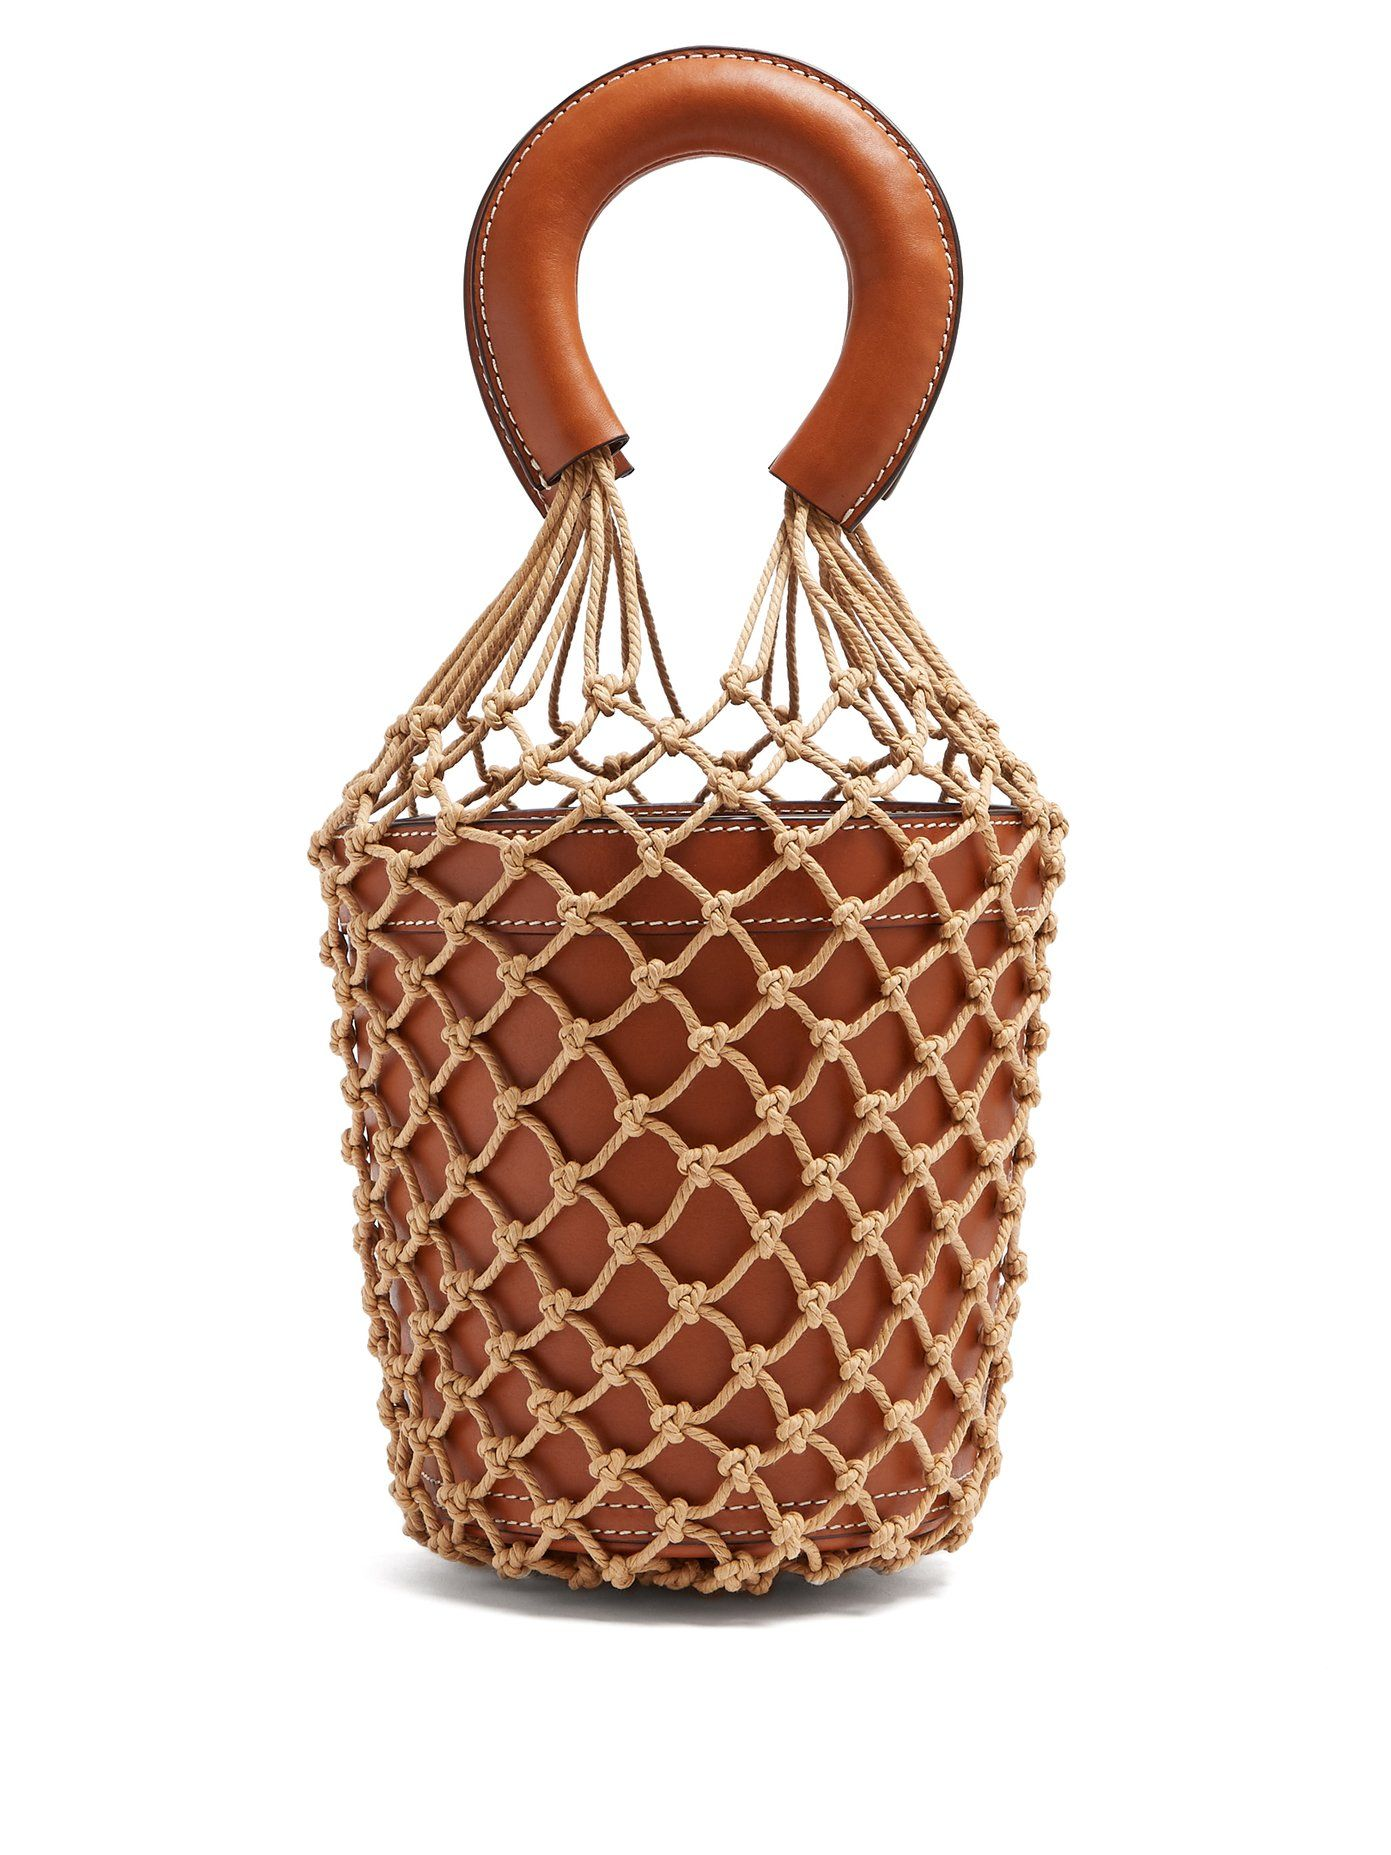 ed0182214c49 Click here to buy Staud Moreau macrame and leather bucket bag at  MATCHESFASHION.COM